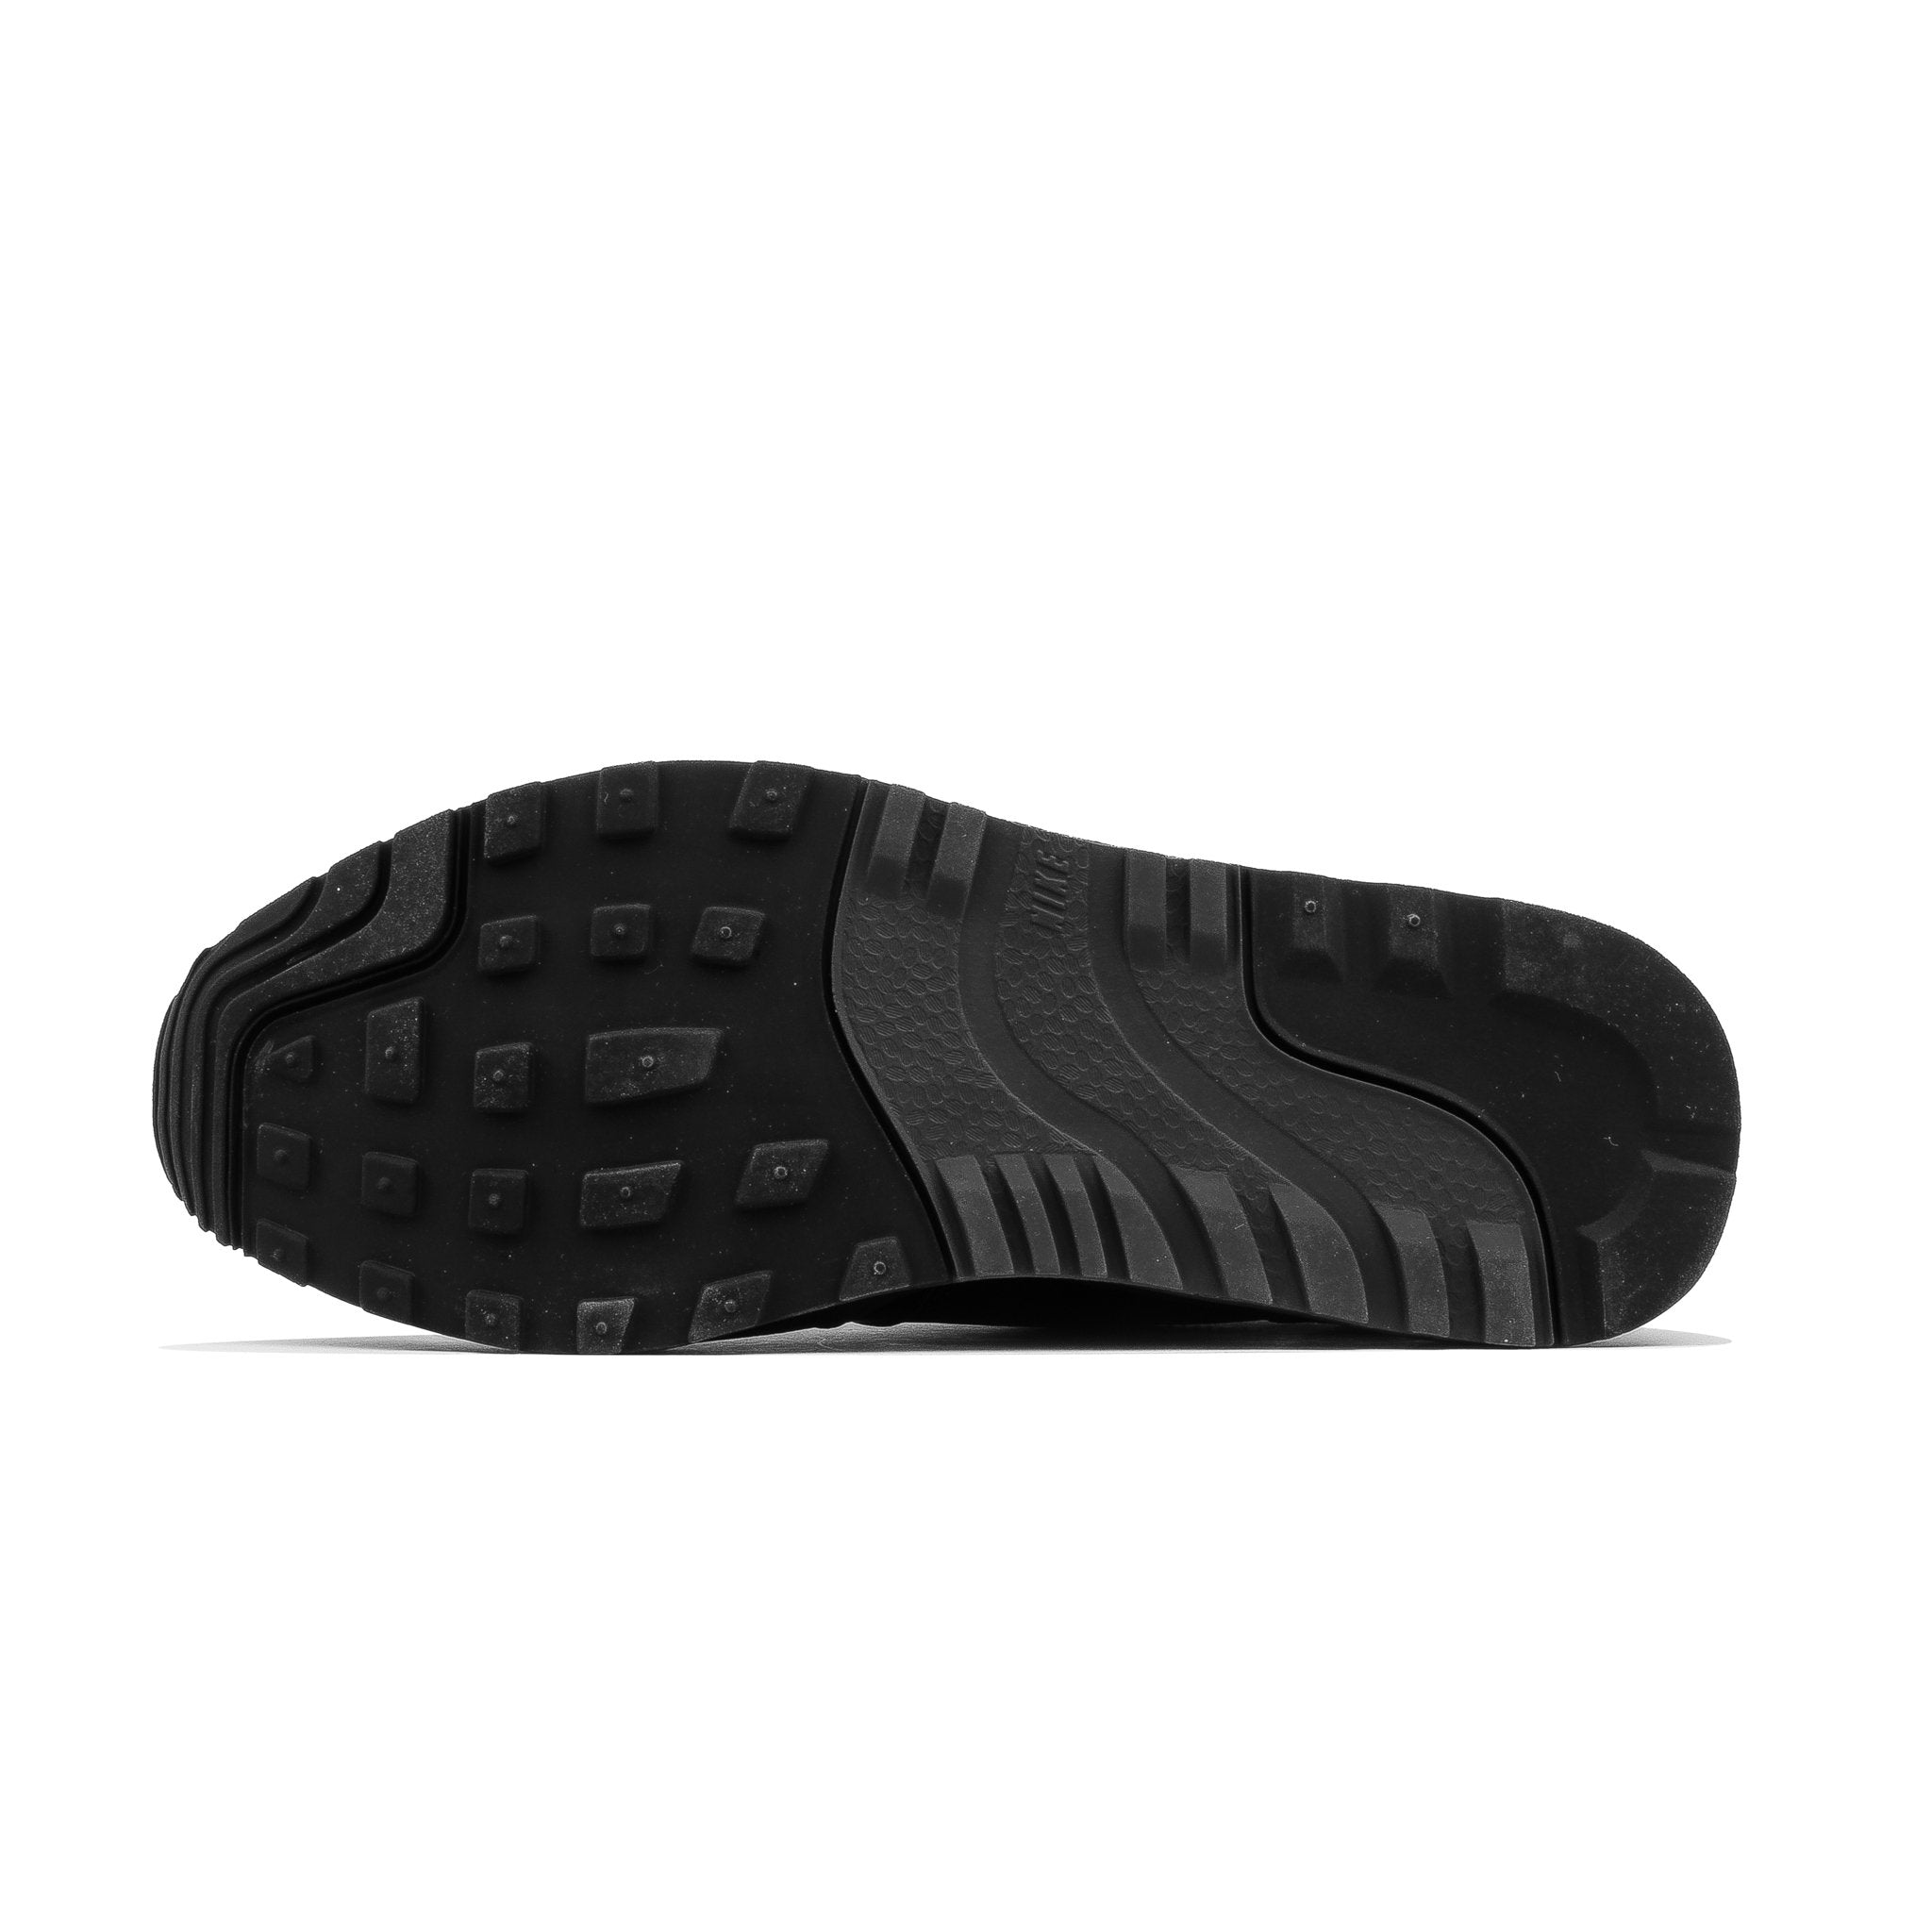 size 40 7a149 1167a Air Safari QS AO3295-002 BlackBlack